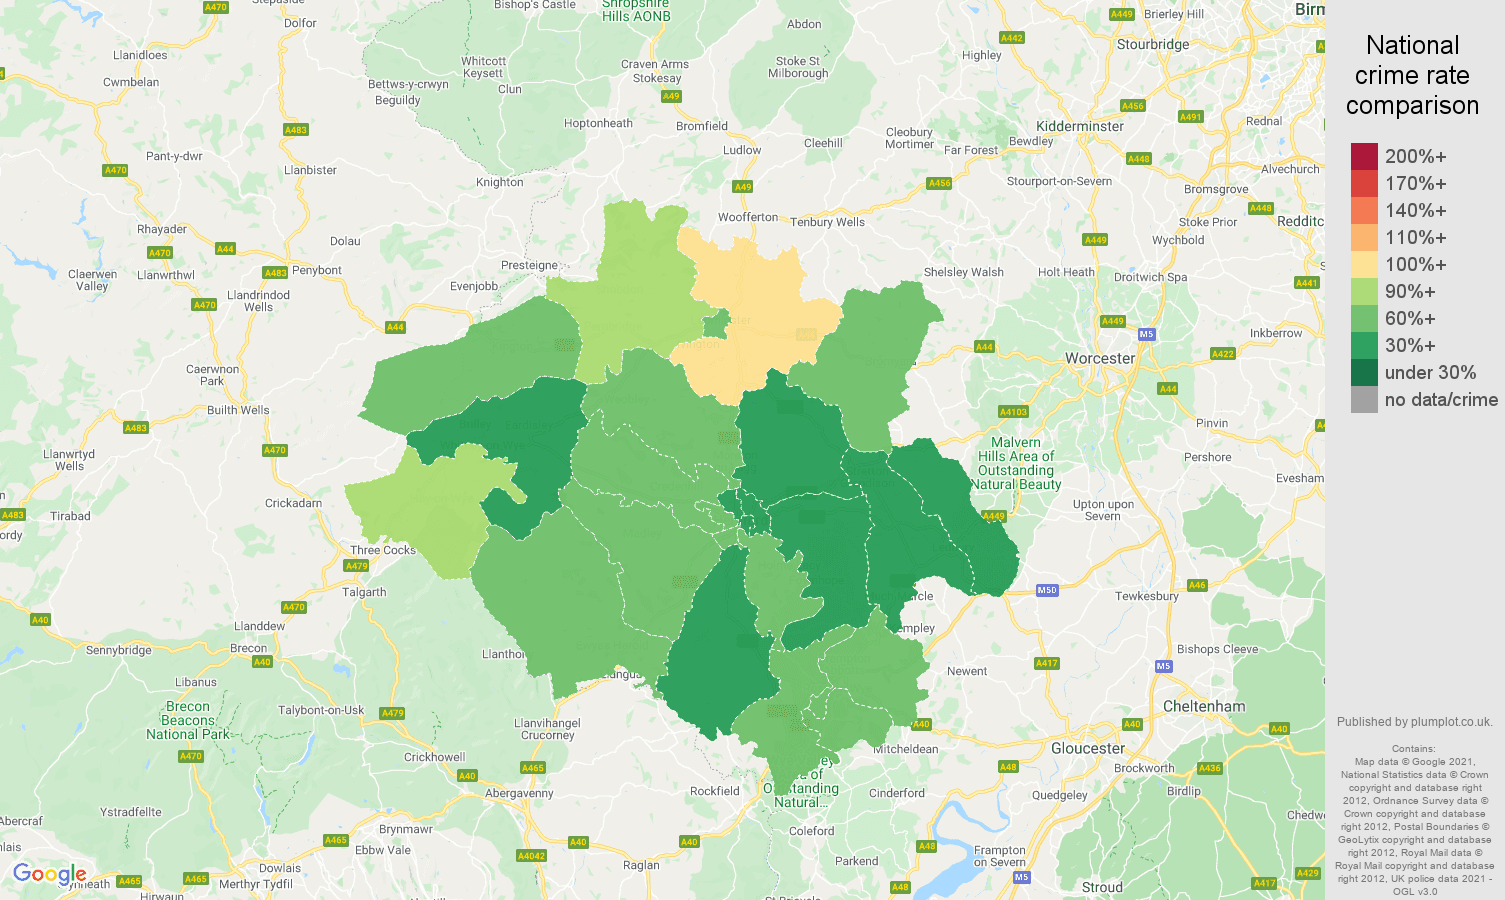 Hereford burglary crime rate comparison map